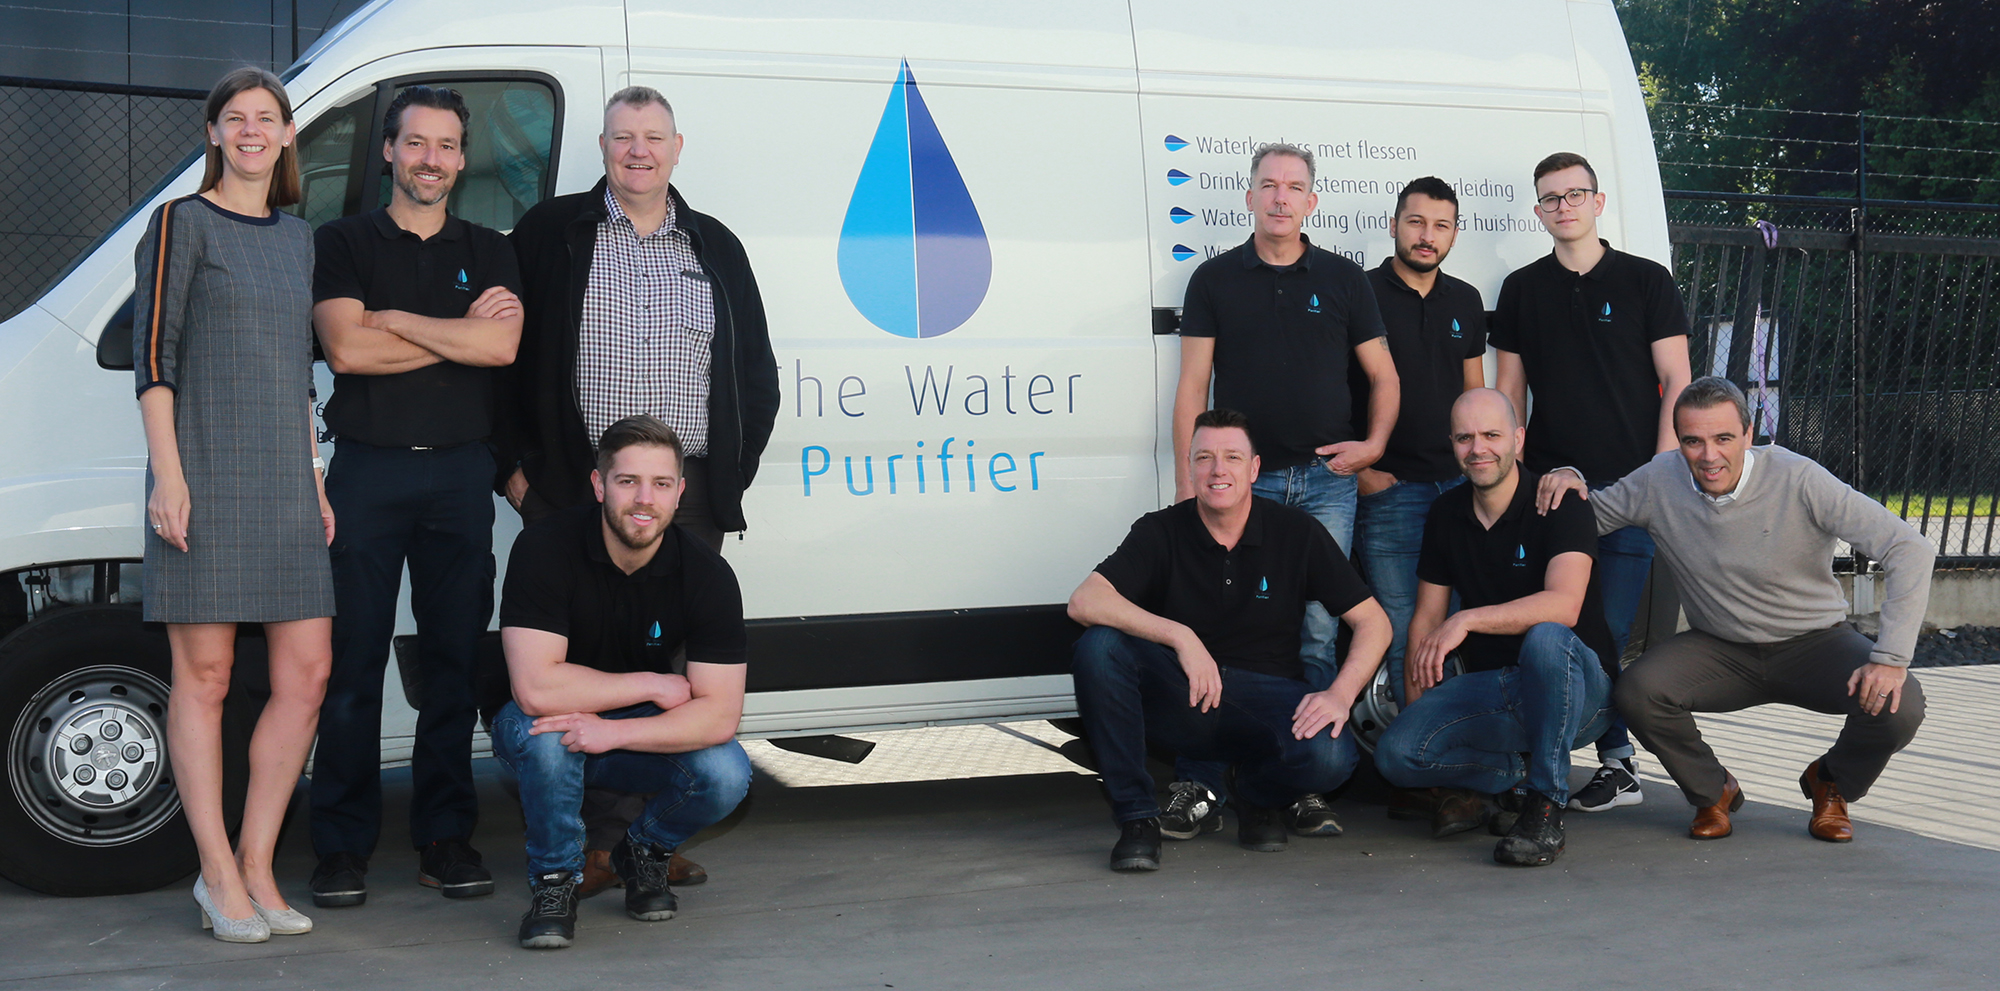 thewaterpurifier